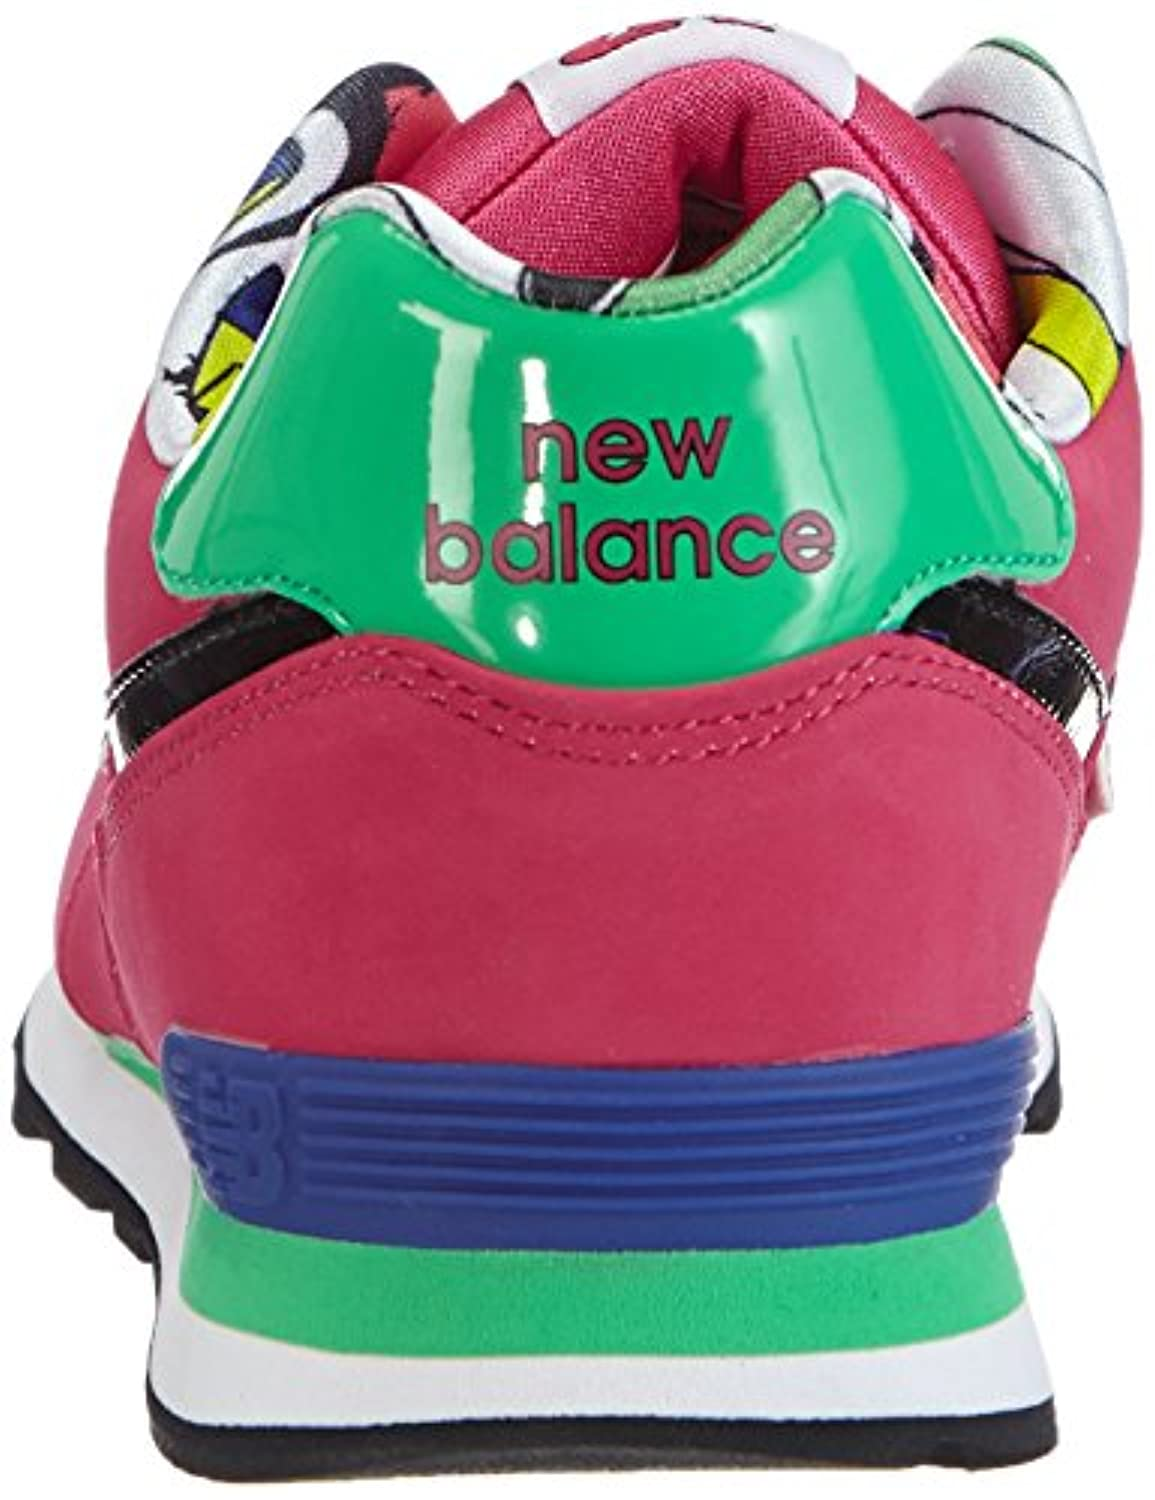 new balance kl574 shoe